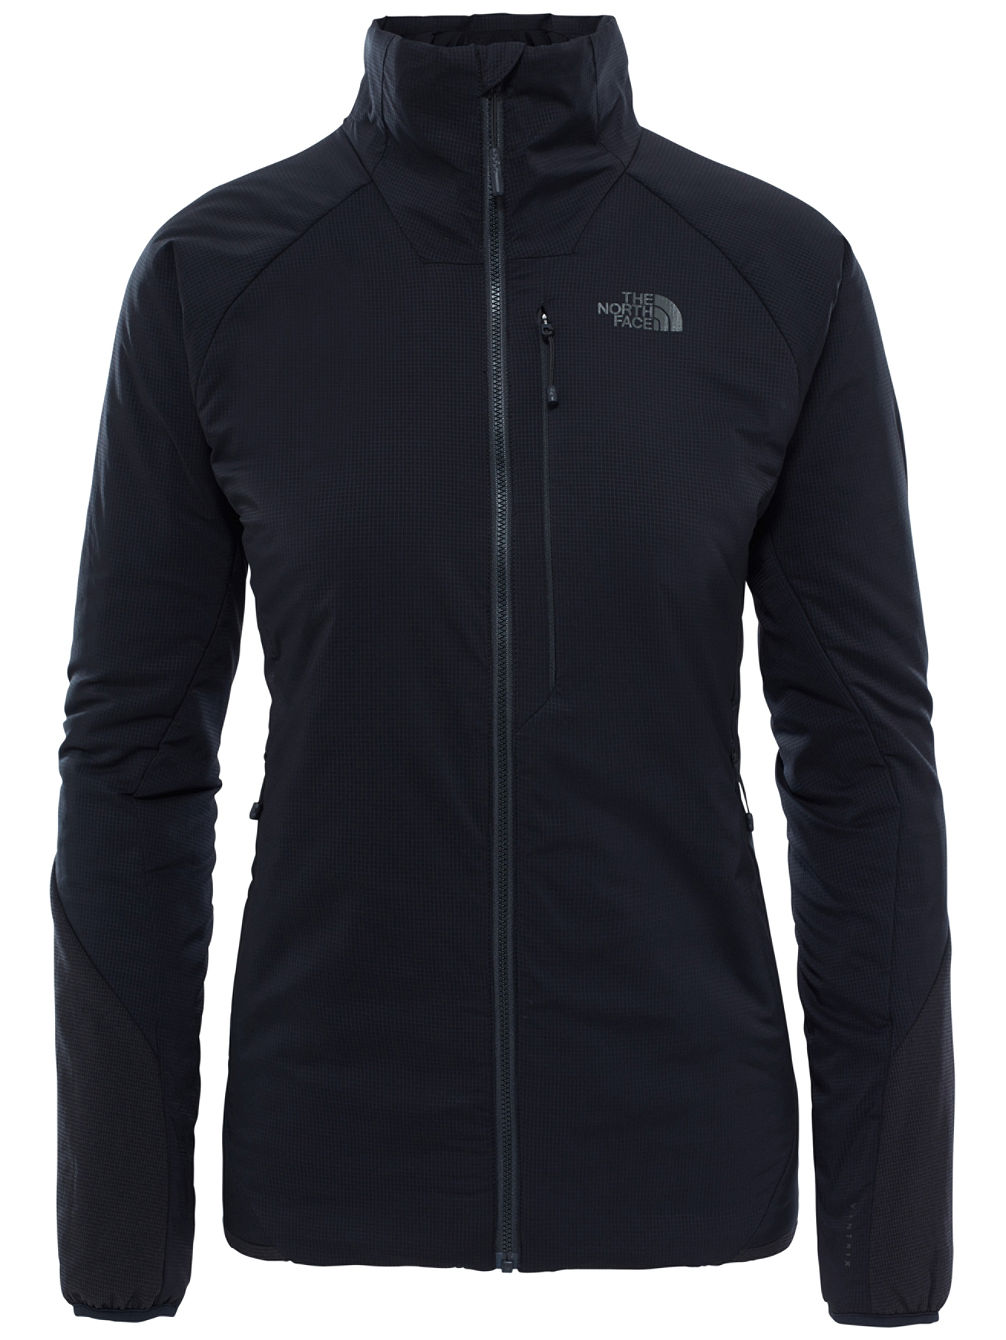 Ventrix Outdoor Jacket